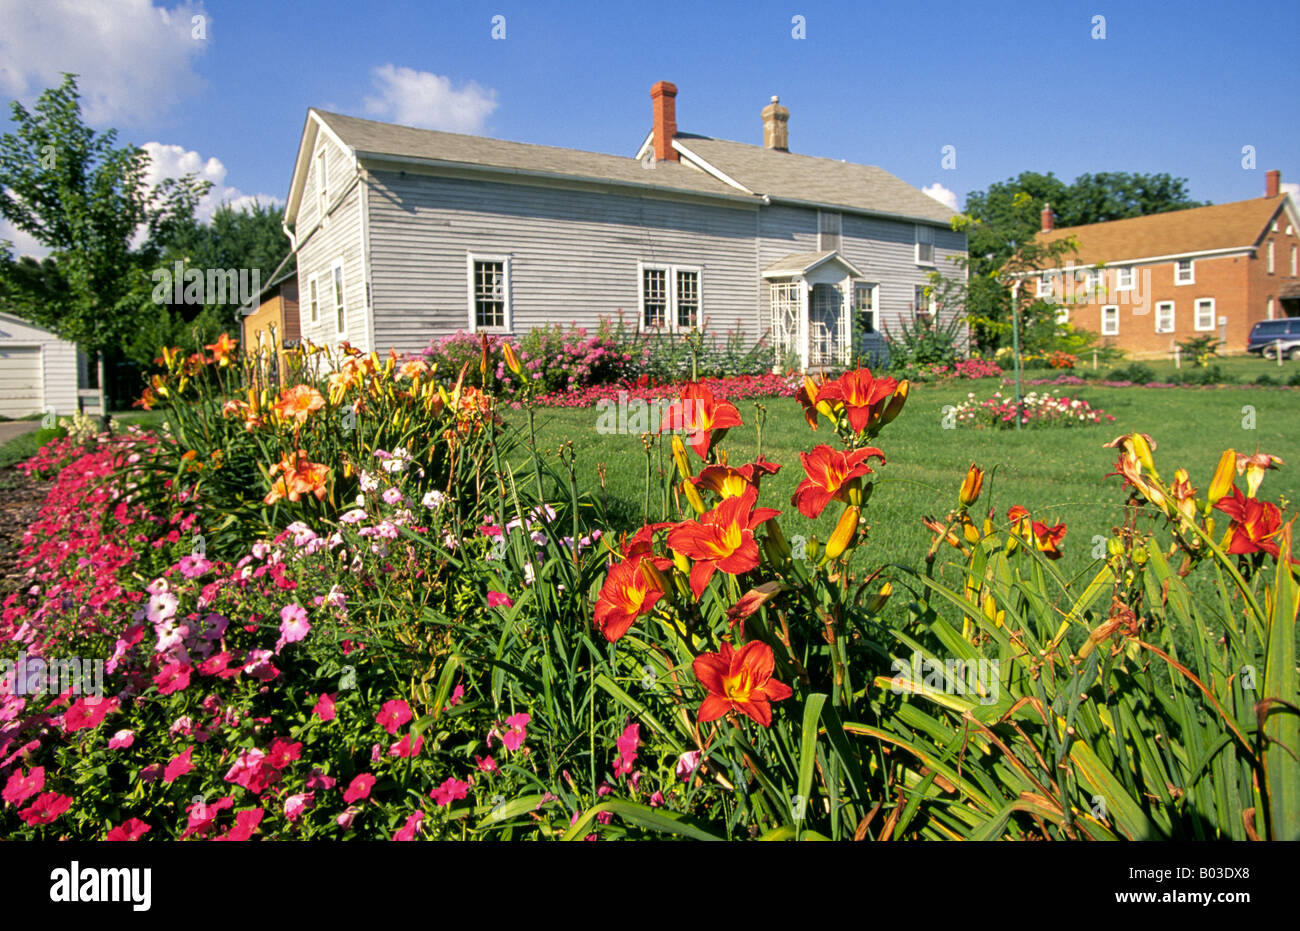 Bright Flowers In A Garden Set Off Beautiful But Old Residential Home The Amana Colonies Farm Country Of Iowa